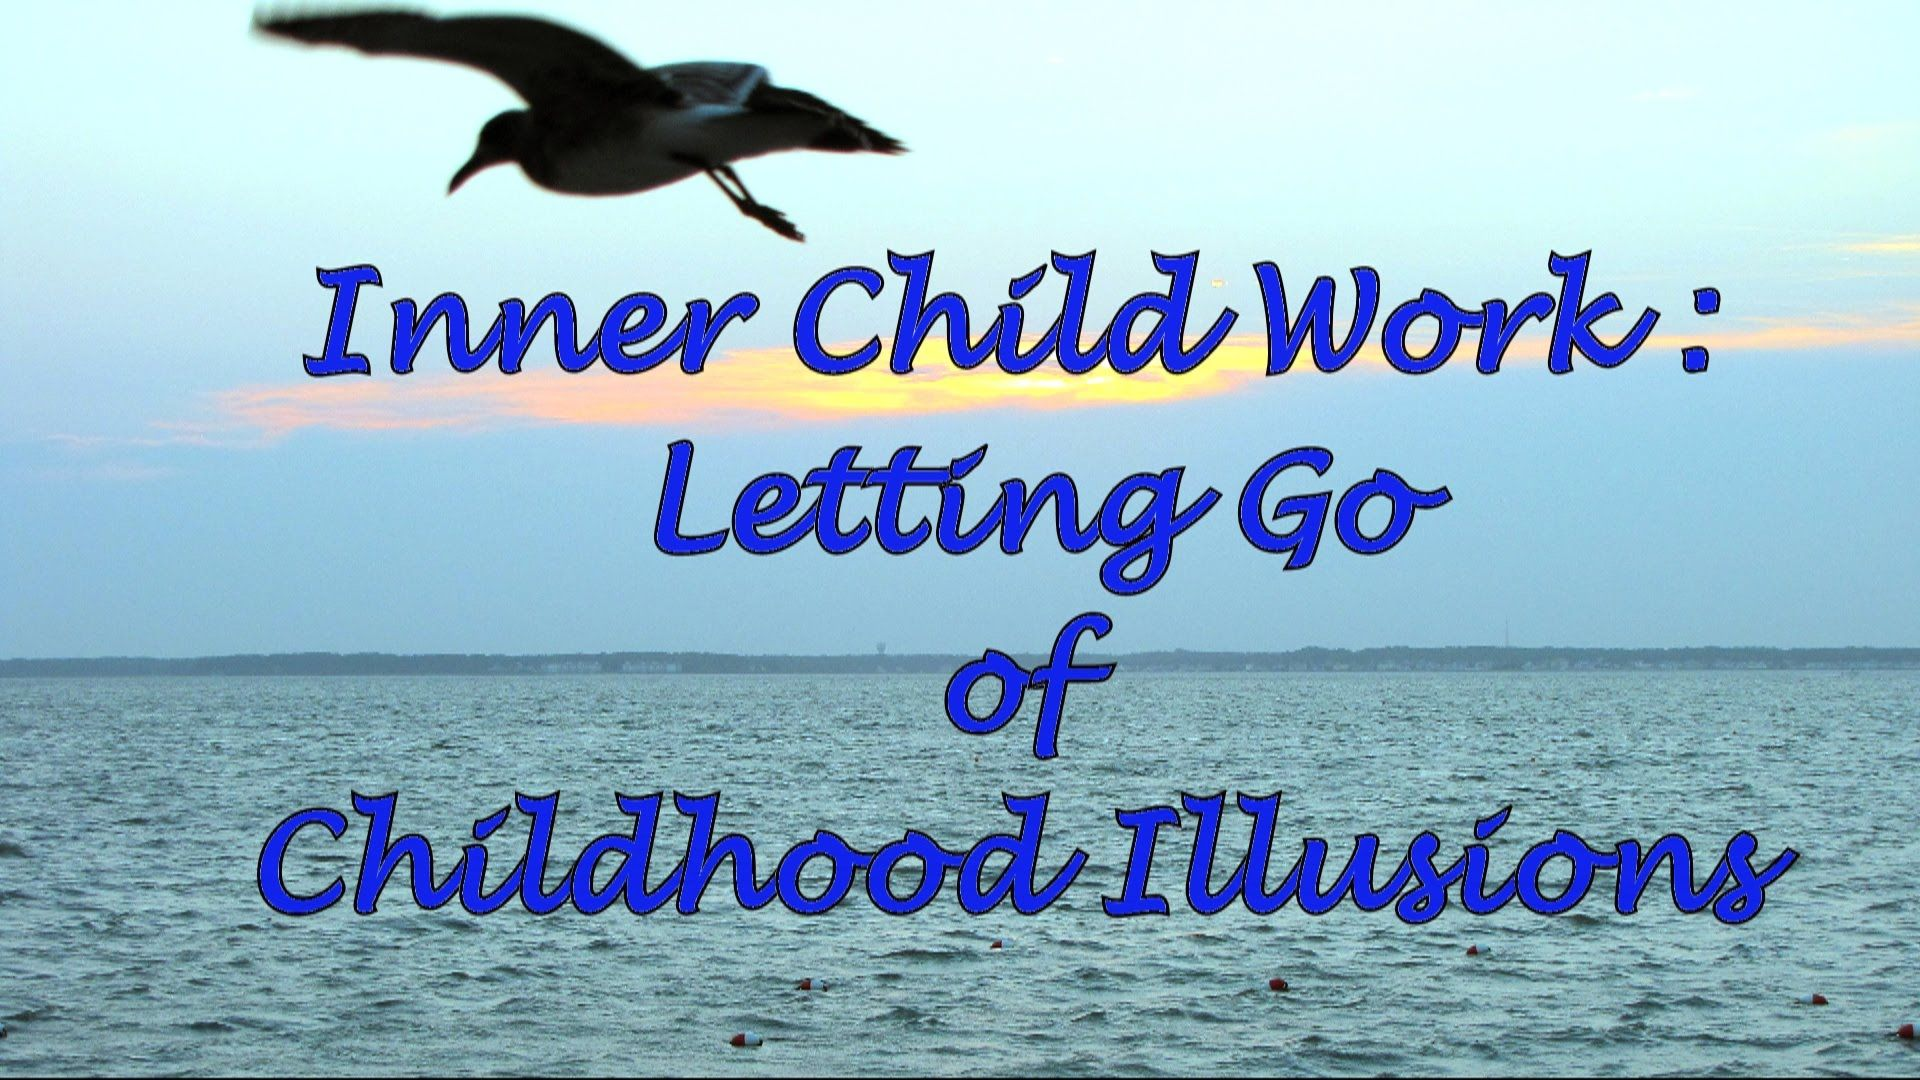 Inner Child Work Letting Go Of Childhood Illusions